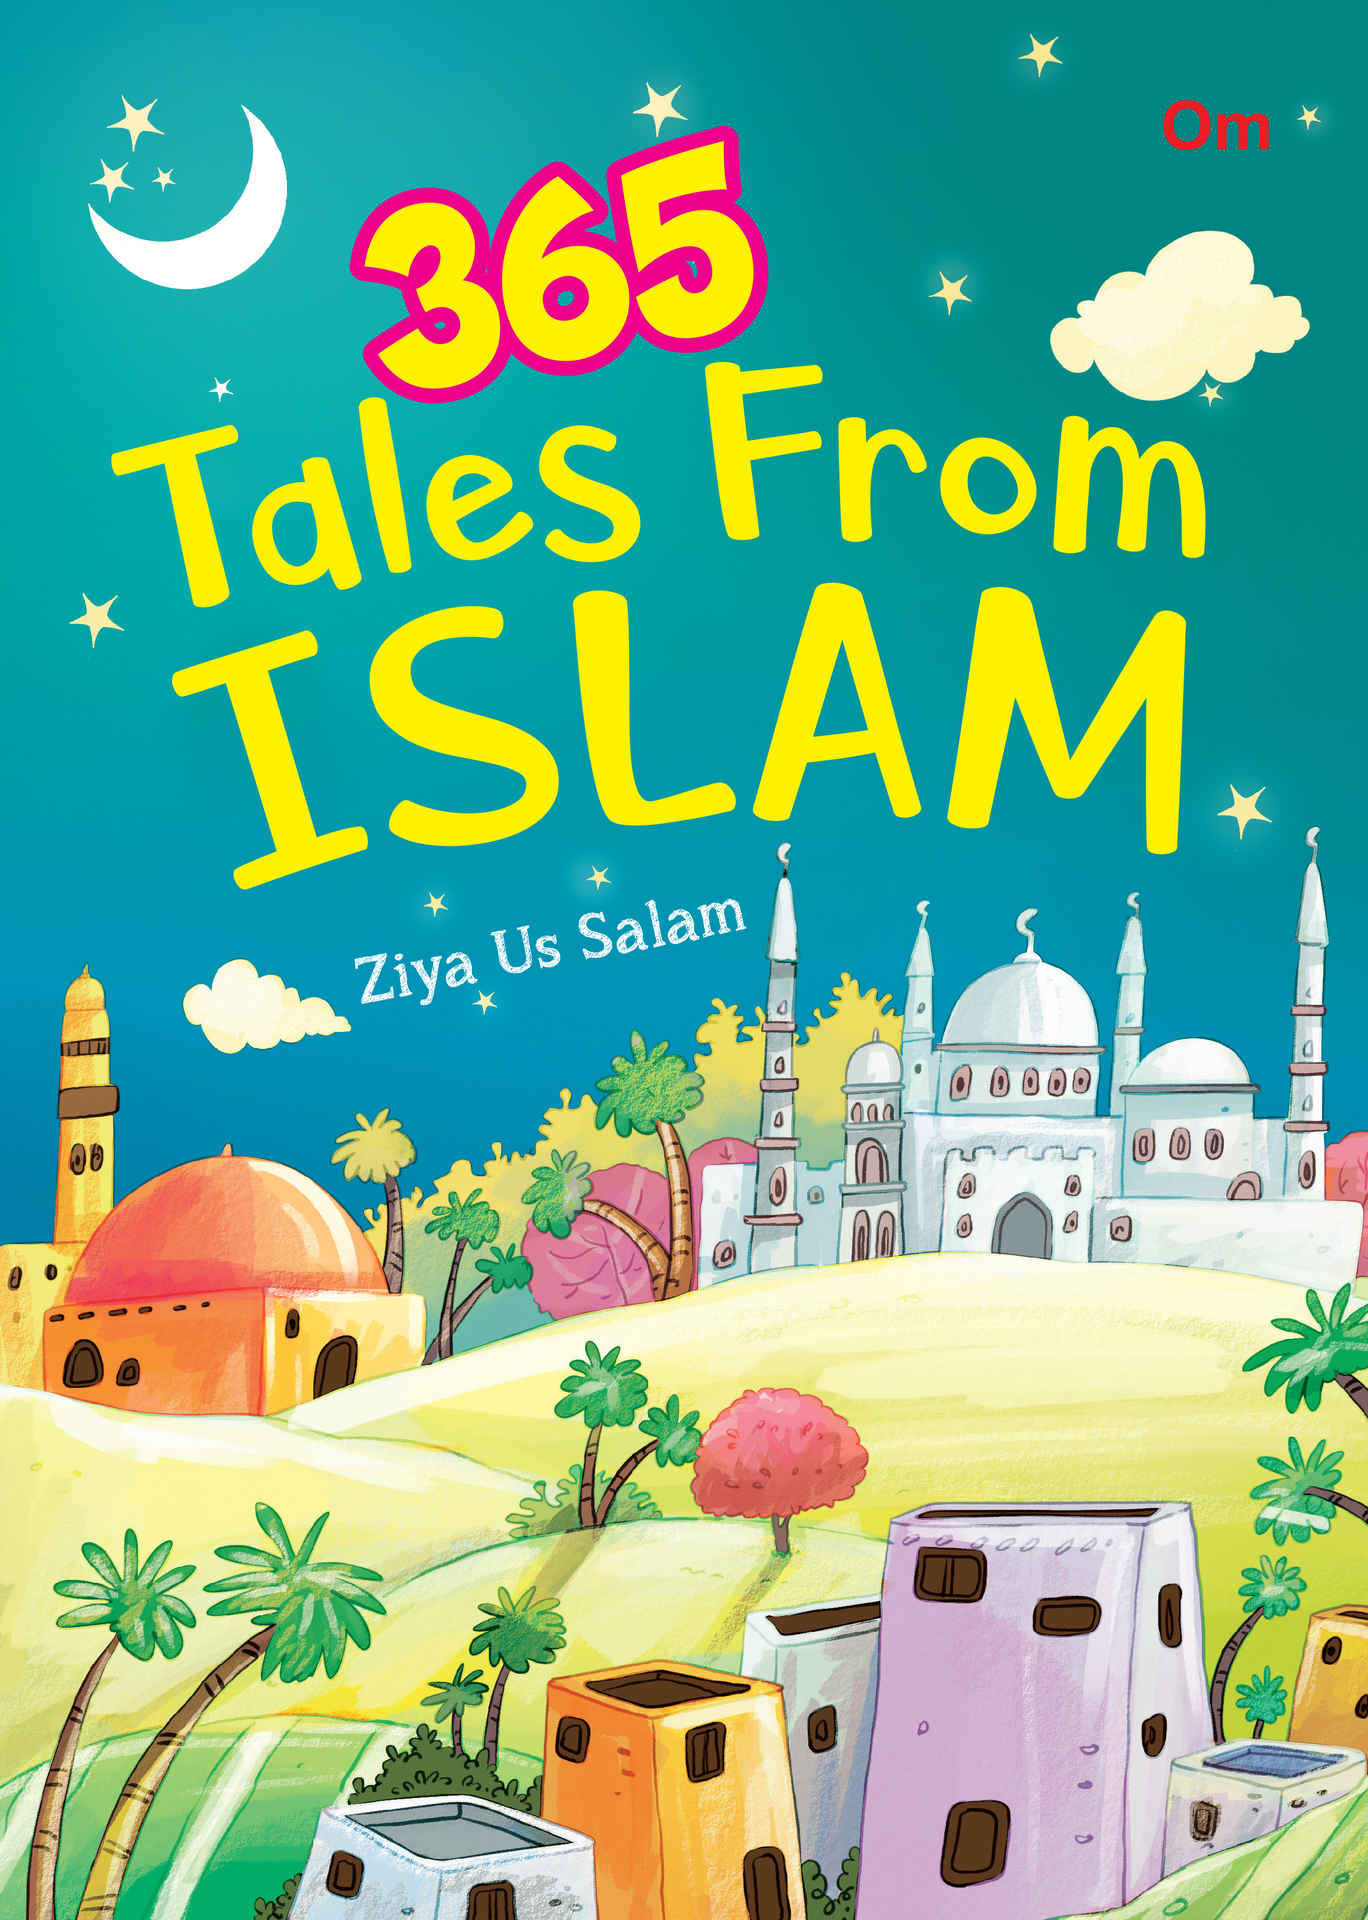 365 Tales from Islam by Ziya Us Salam, Short stories for children